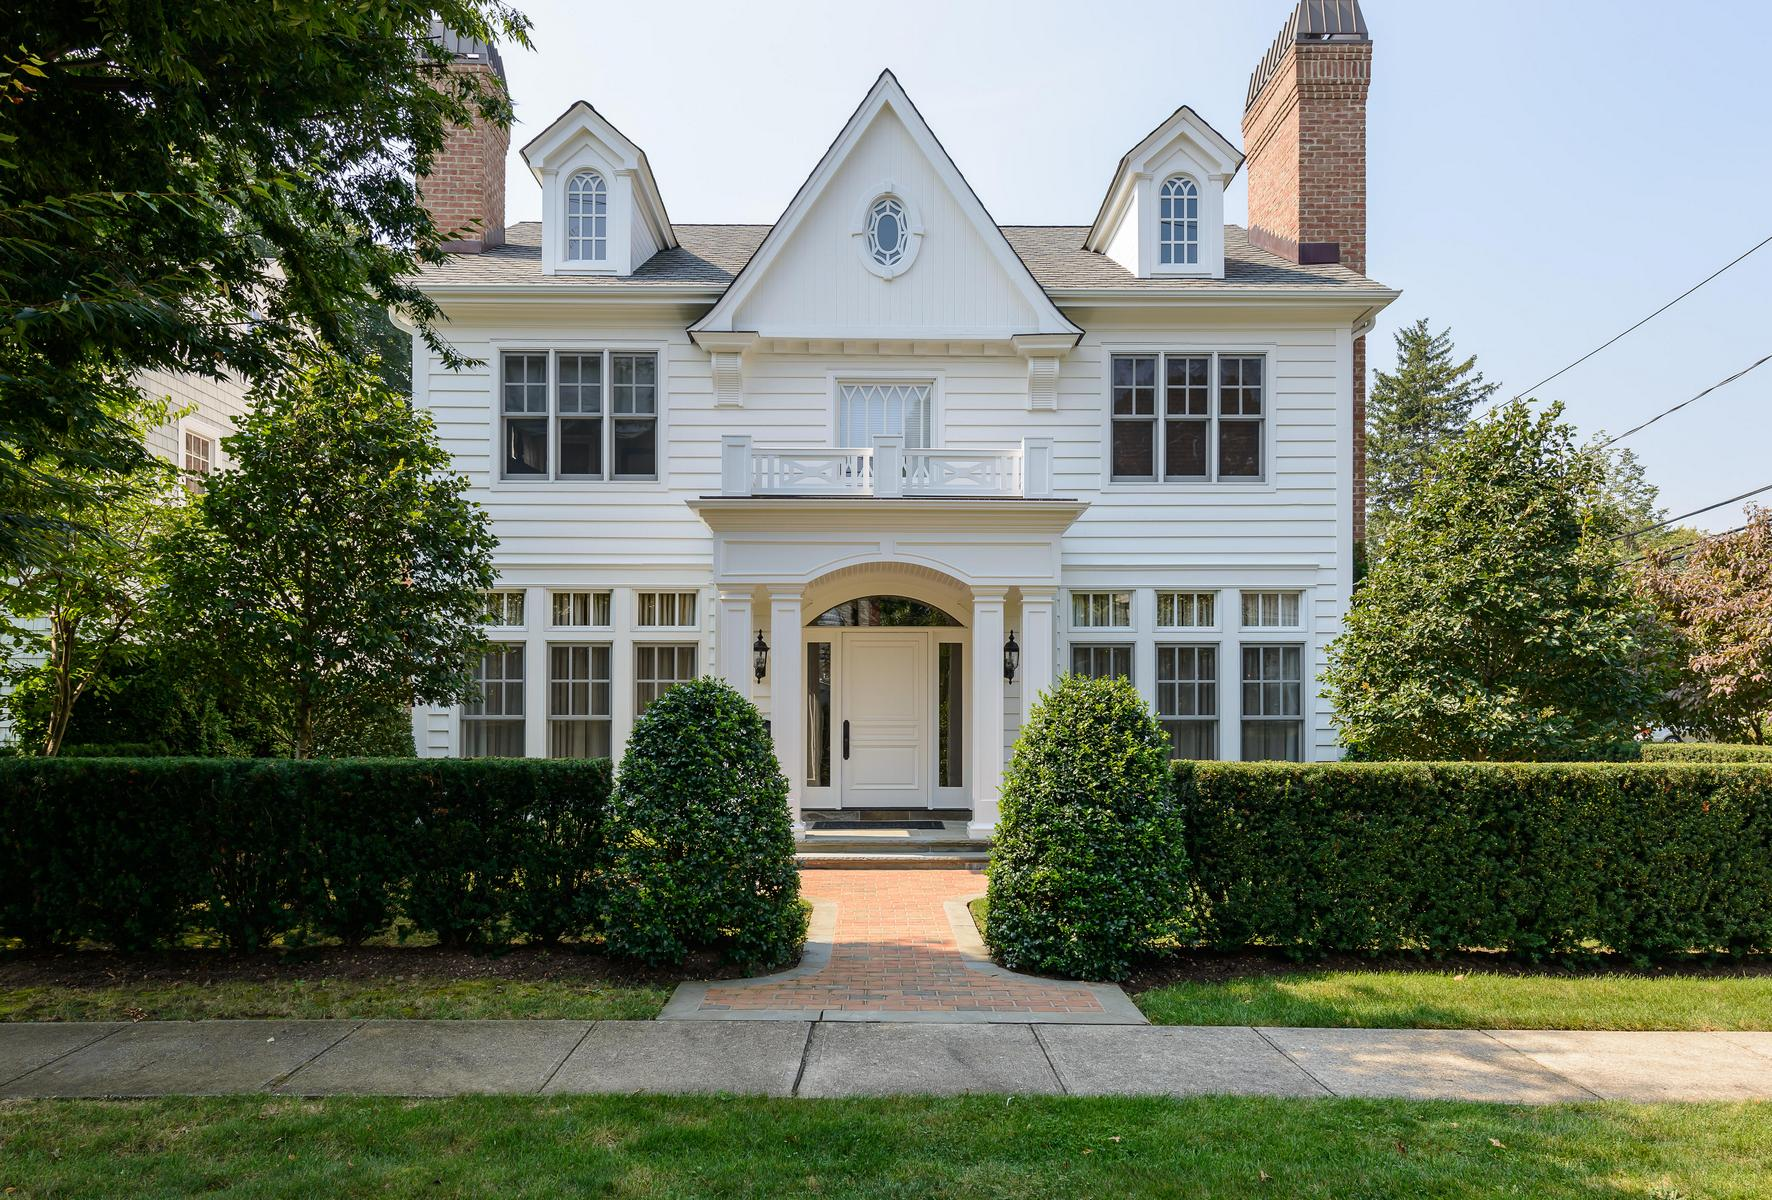 Single Family Home for Sale at Colonial 39 Woodbury Way Syosset, New York, 11791 United States